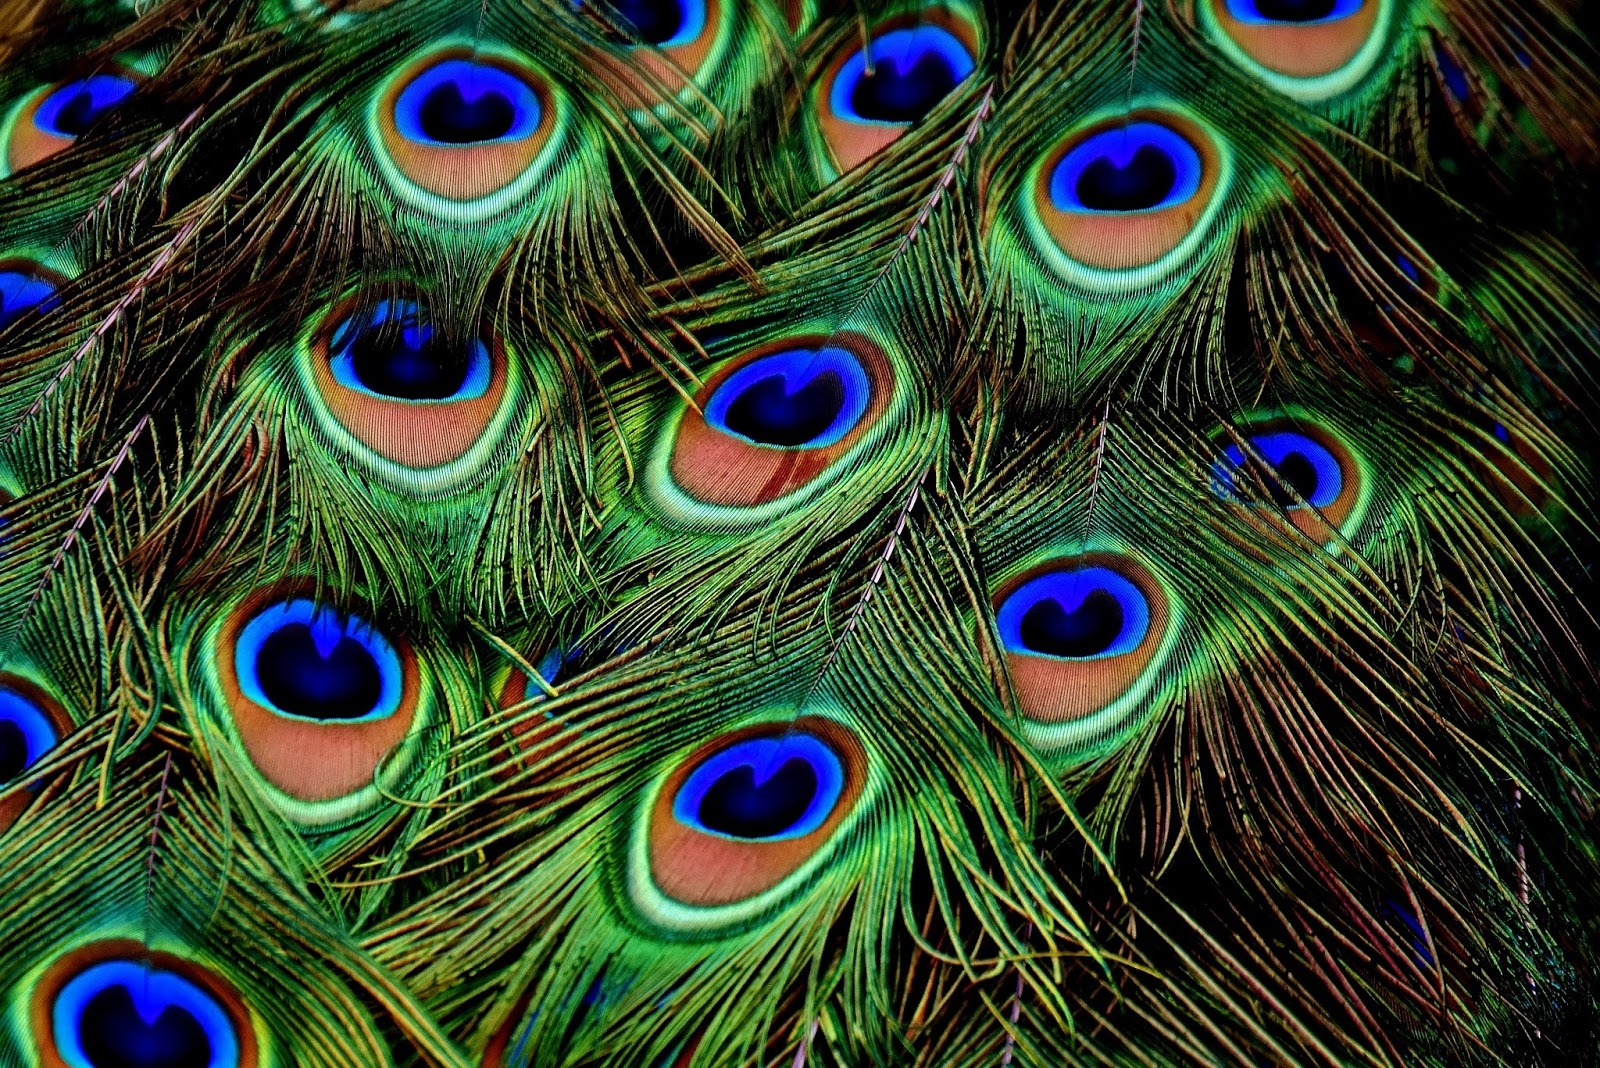 Picture of peacock tail feathers.